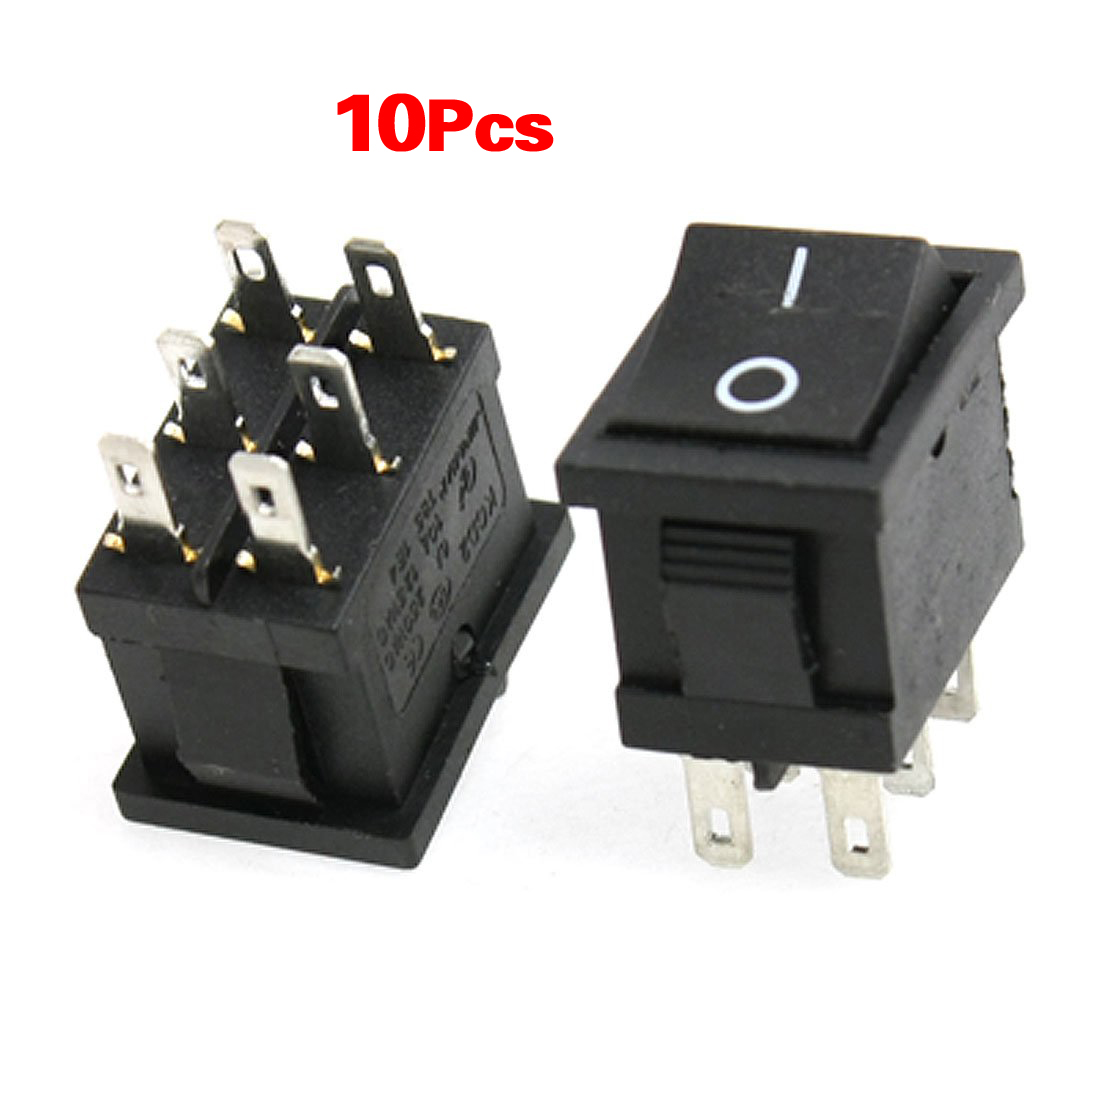 Promotion! 10pcs AC 6A/250V 10A/125V 6 Pin DPDT ON/ON 2 Position Snap In Boat Rocker Switch new mini 5pcs lot 2 pin snap in on off position snap boat button switch 12v 110v 250v t1405 p0 5